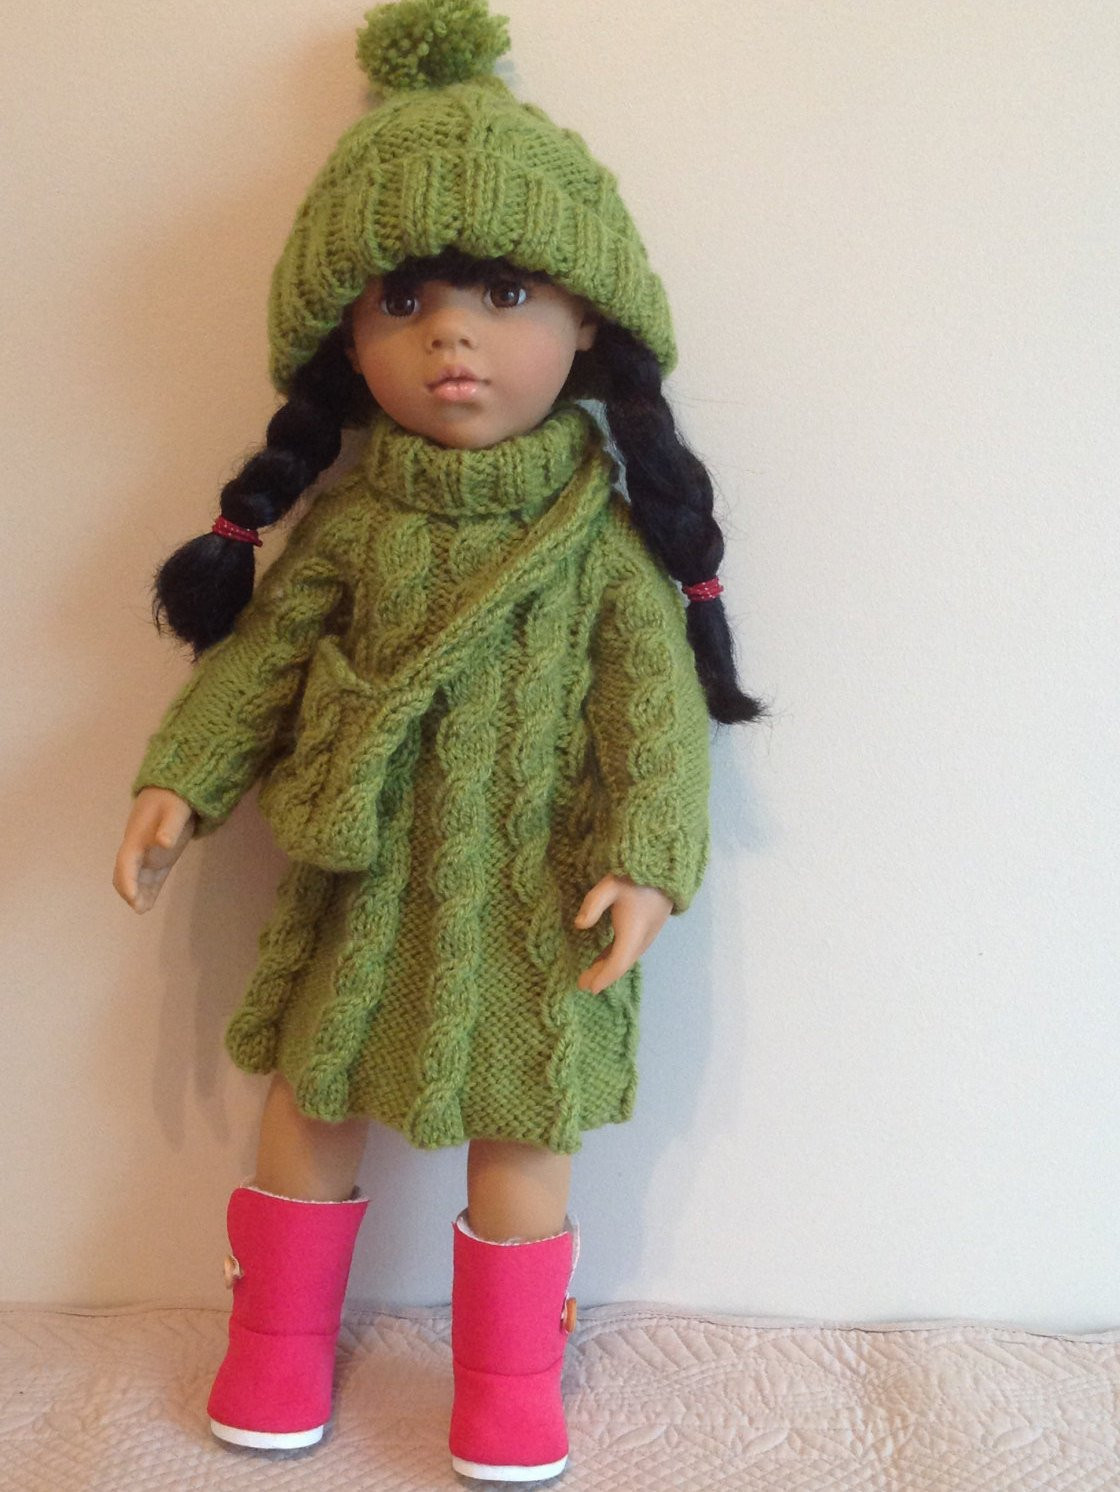 Doll Patterns New Dolls Fashion Clothes Knitting Pattern 18 Doll Will Of Doll Patterns Best Of My Rag Doll Adorable Dolls to Sew